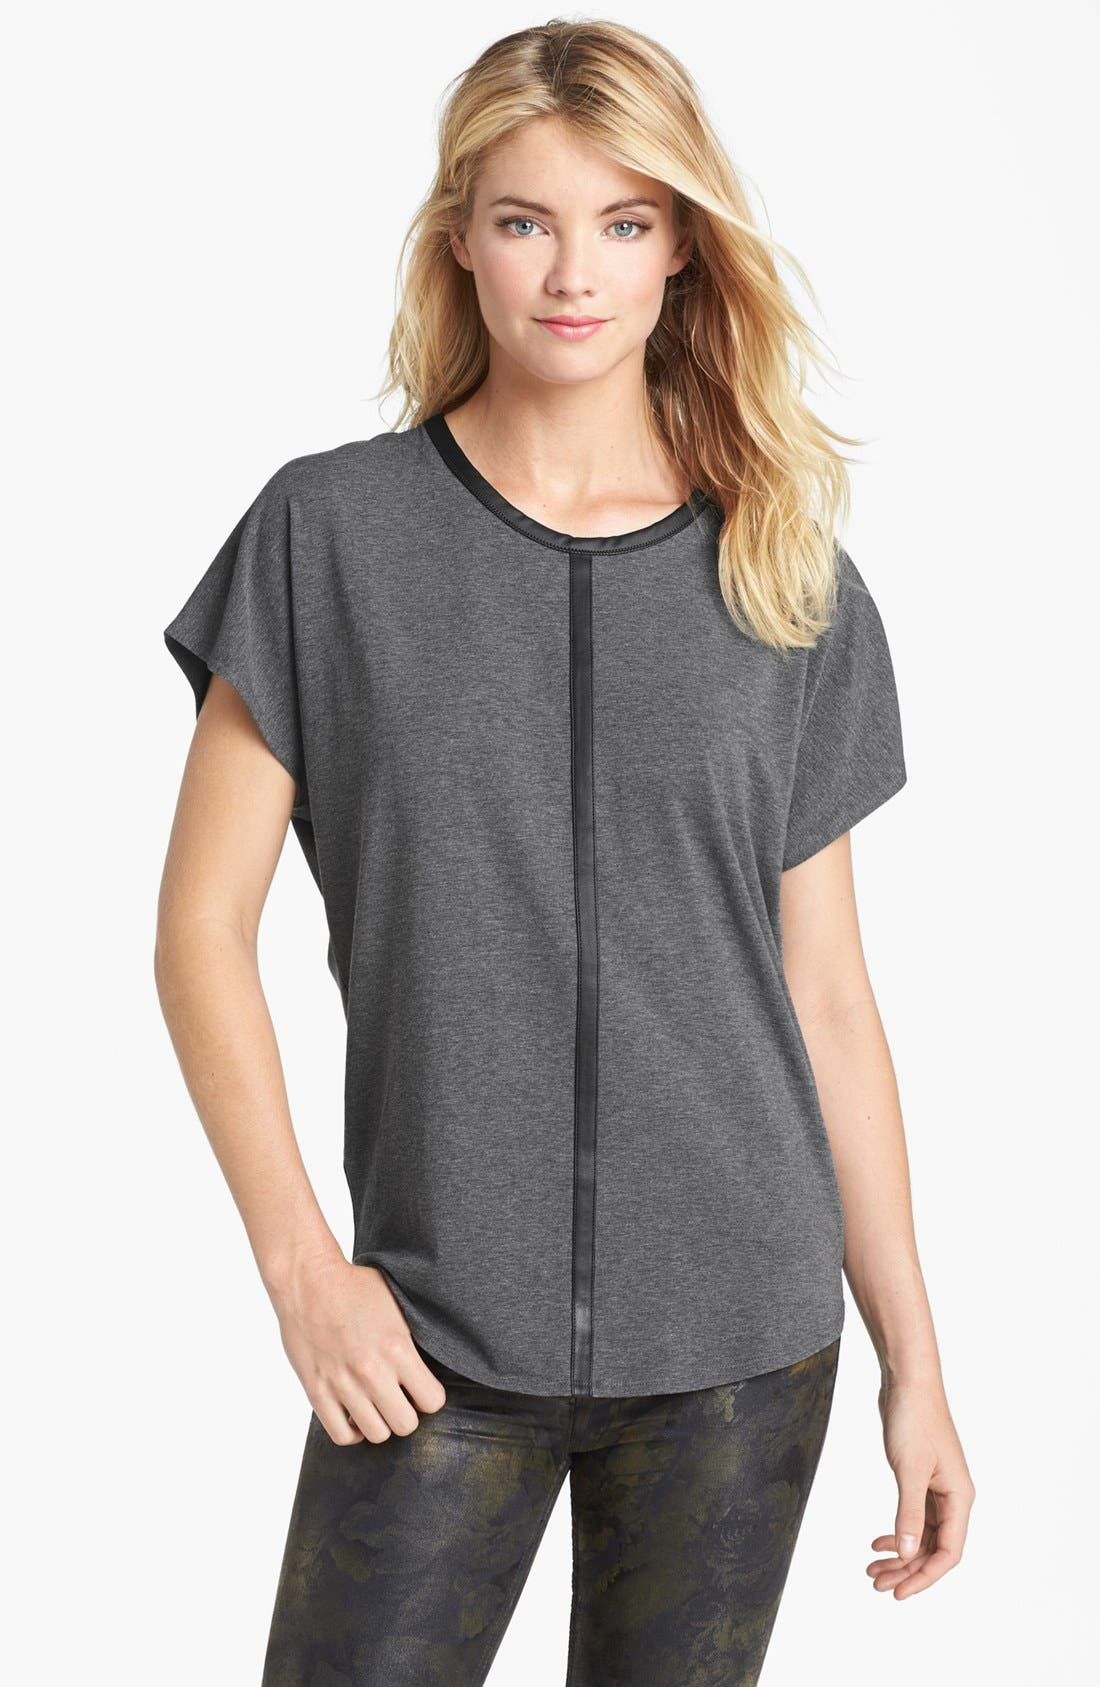 Alternate Image 1 Selected - Two by Vince Camuto Faux Leather Trim Slouchy Tee